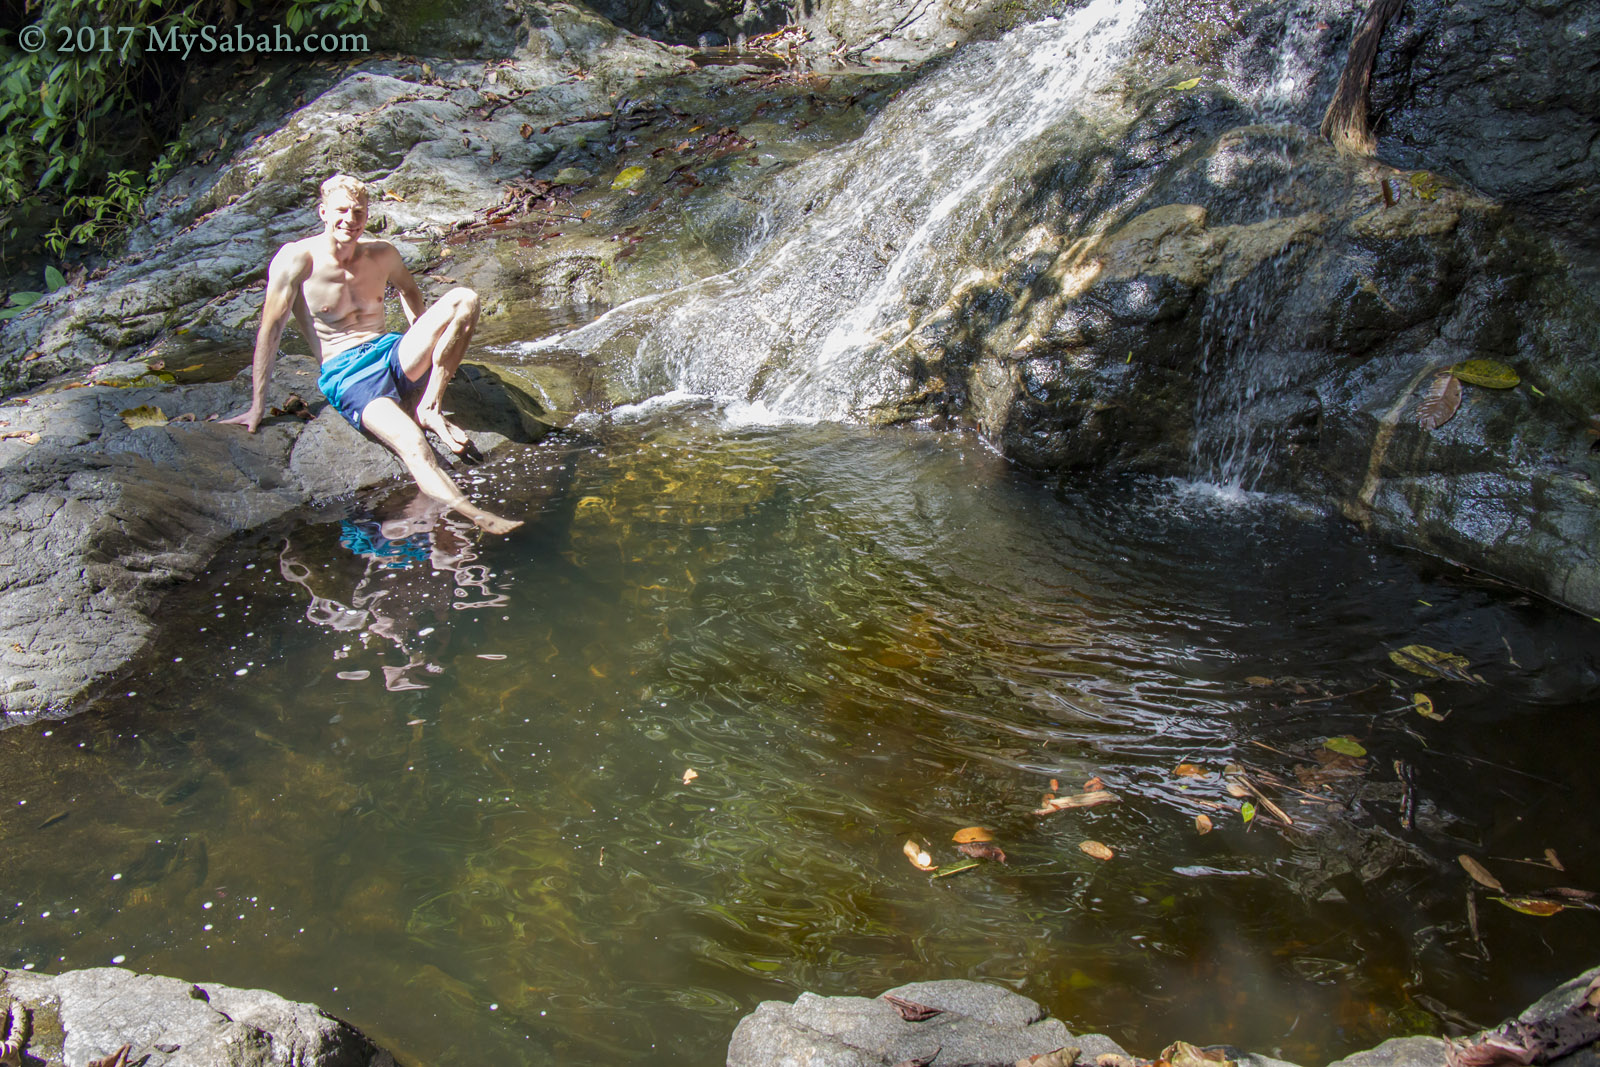 Swimming in the waterfall pond